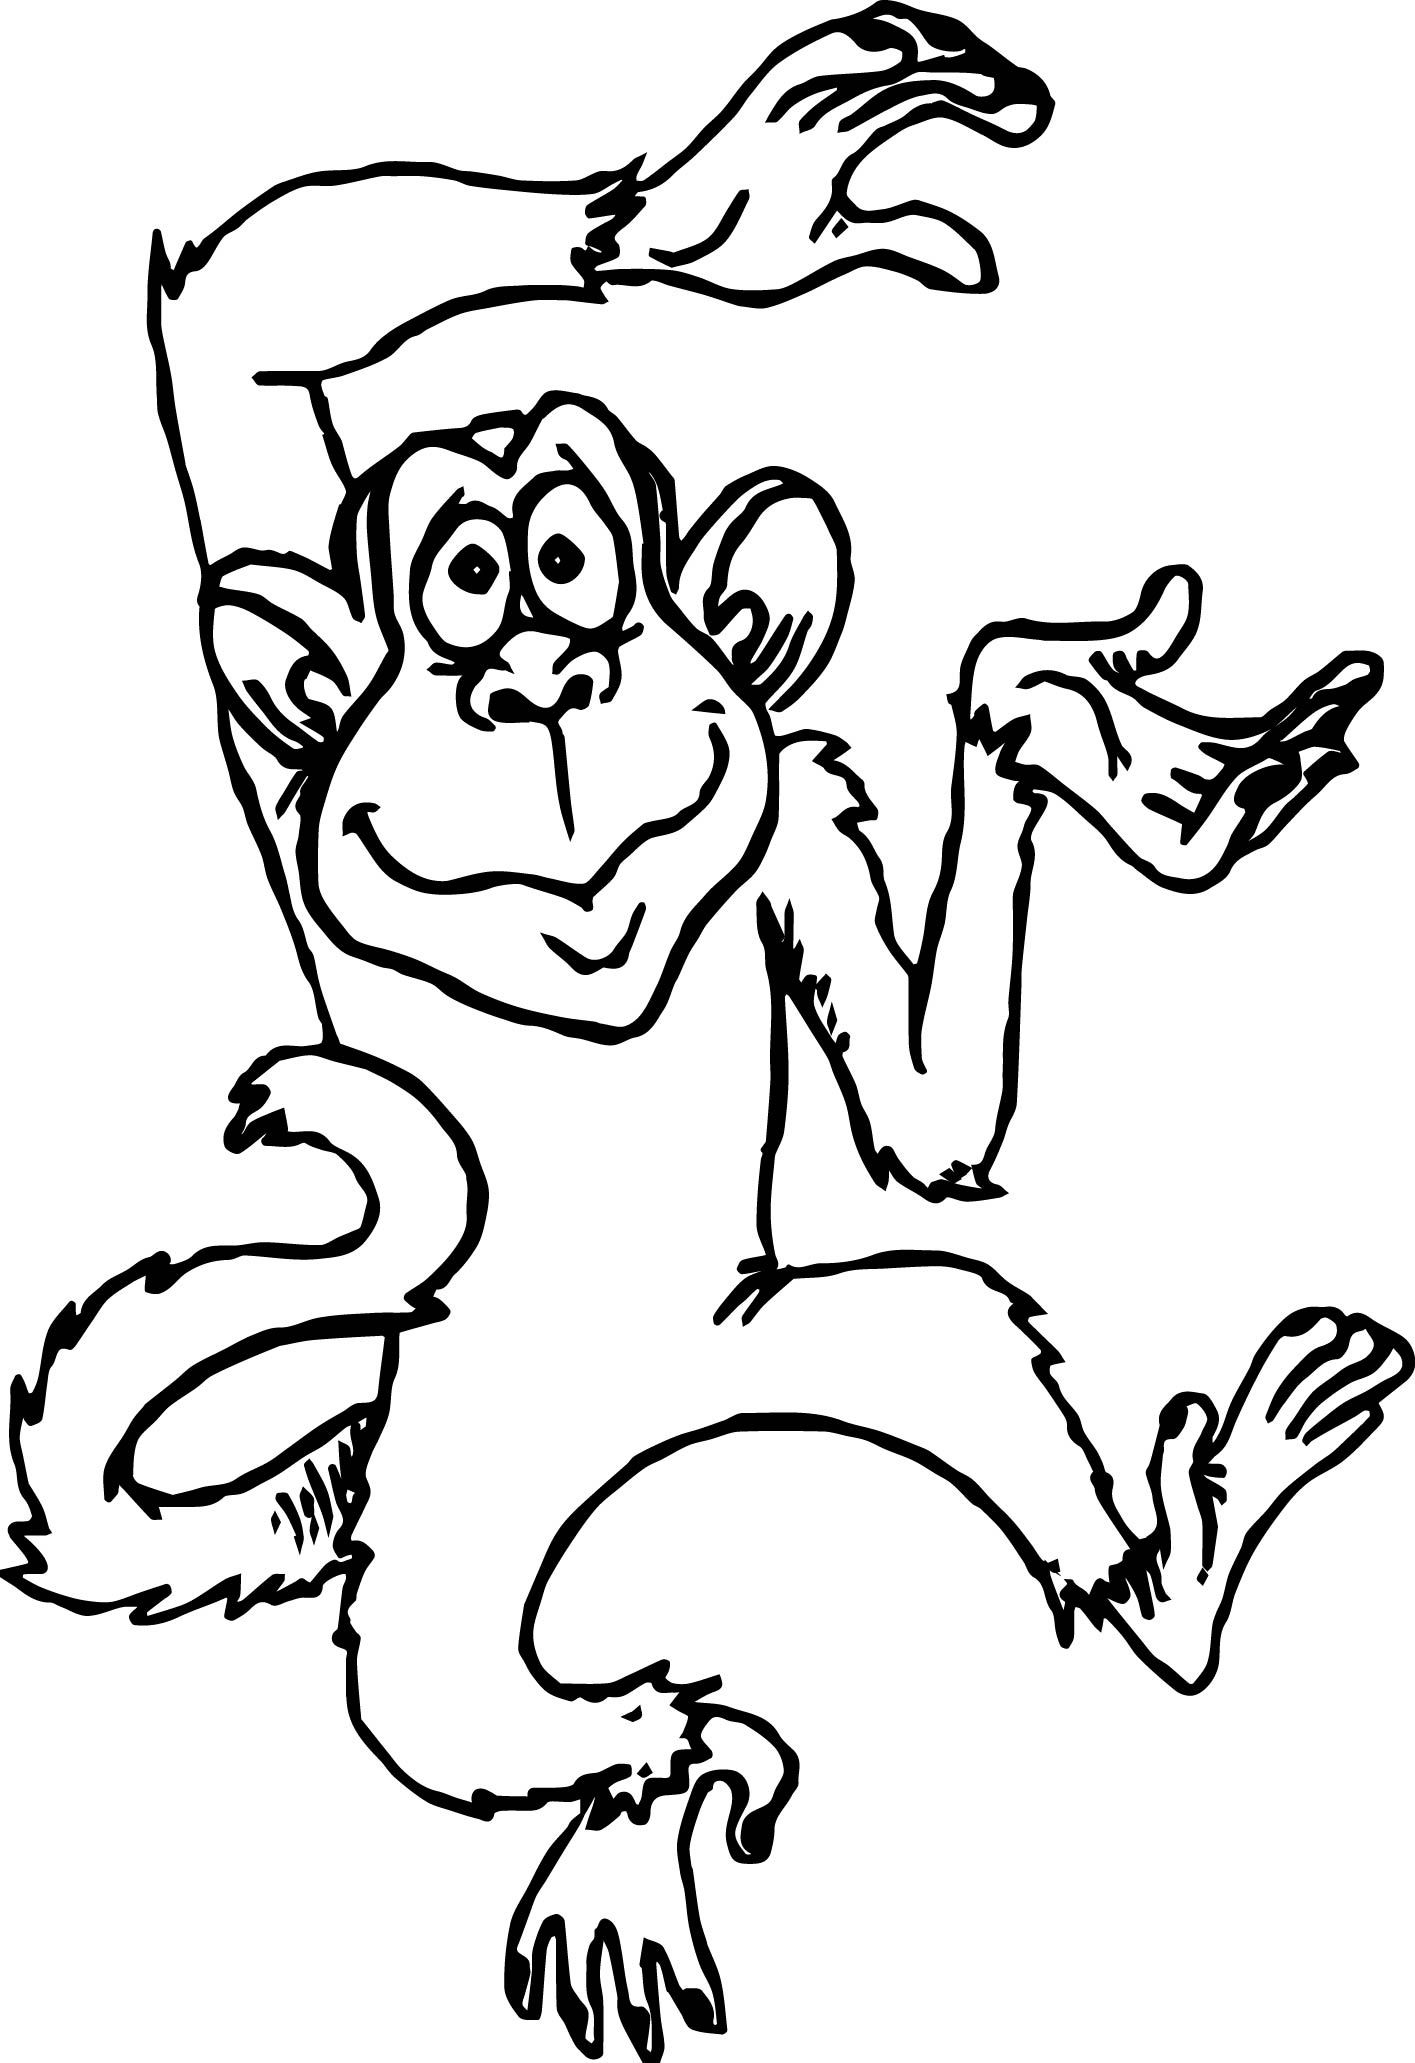 Cute Monkey Cartoons Monkey Coloring Page